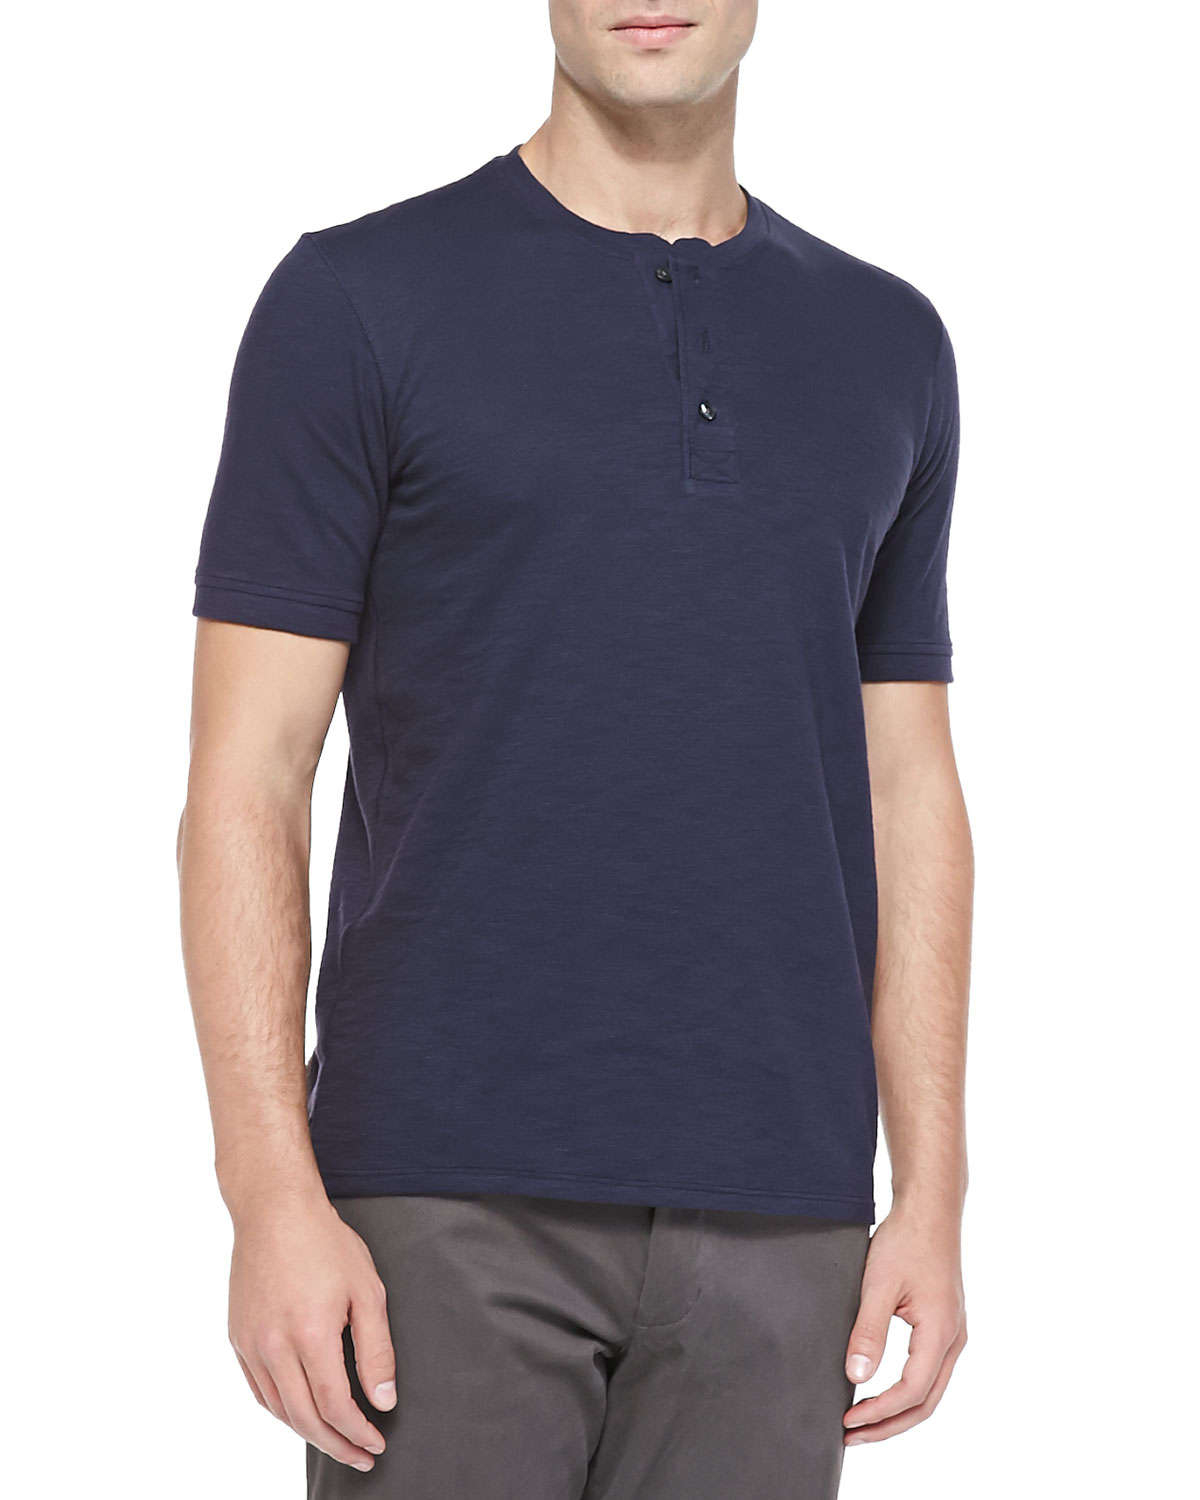 Vince basic cotton henley t shirt in blue for men lyst for Vince tee shirts sale